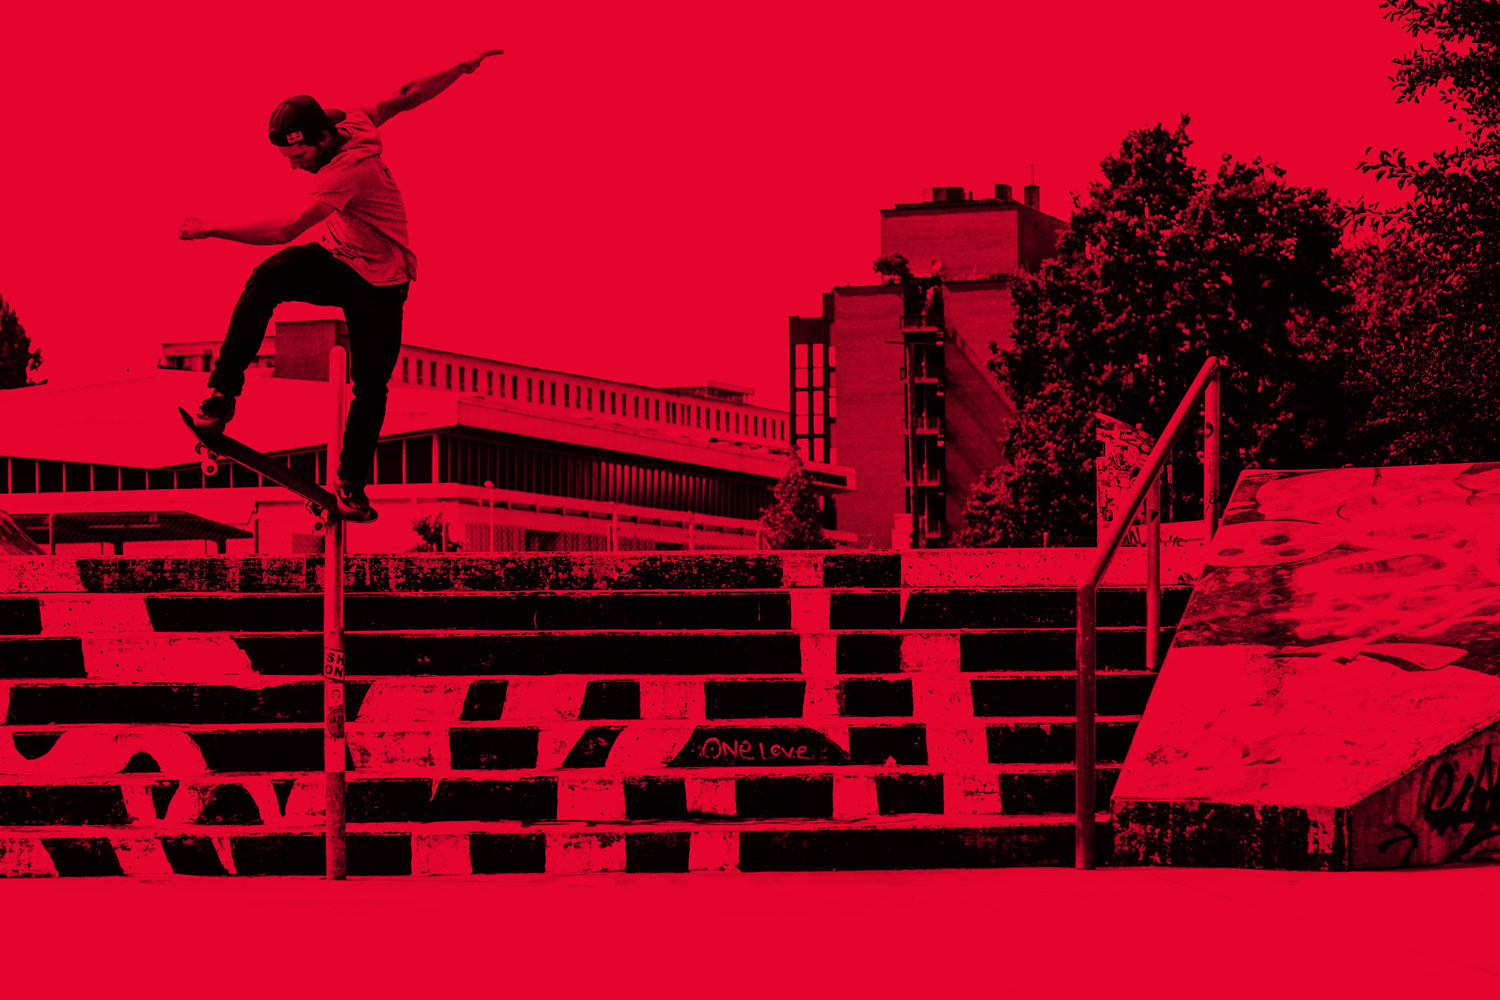 Freestyle_ch_Skate_Jump_red.jpg